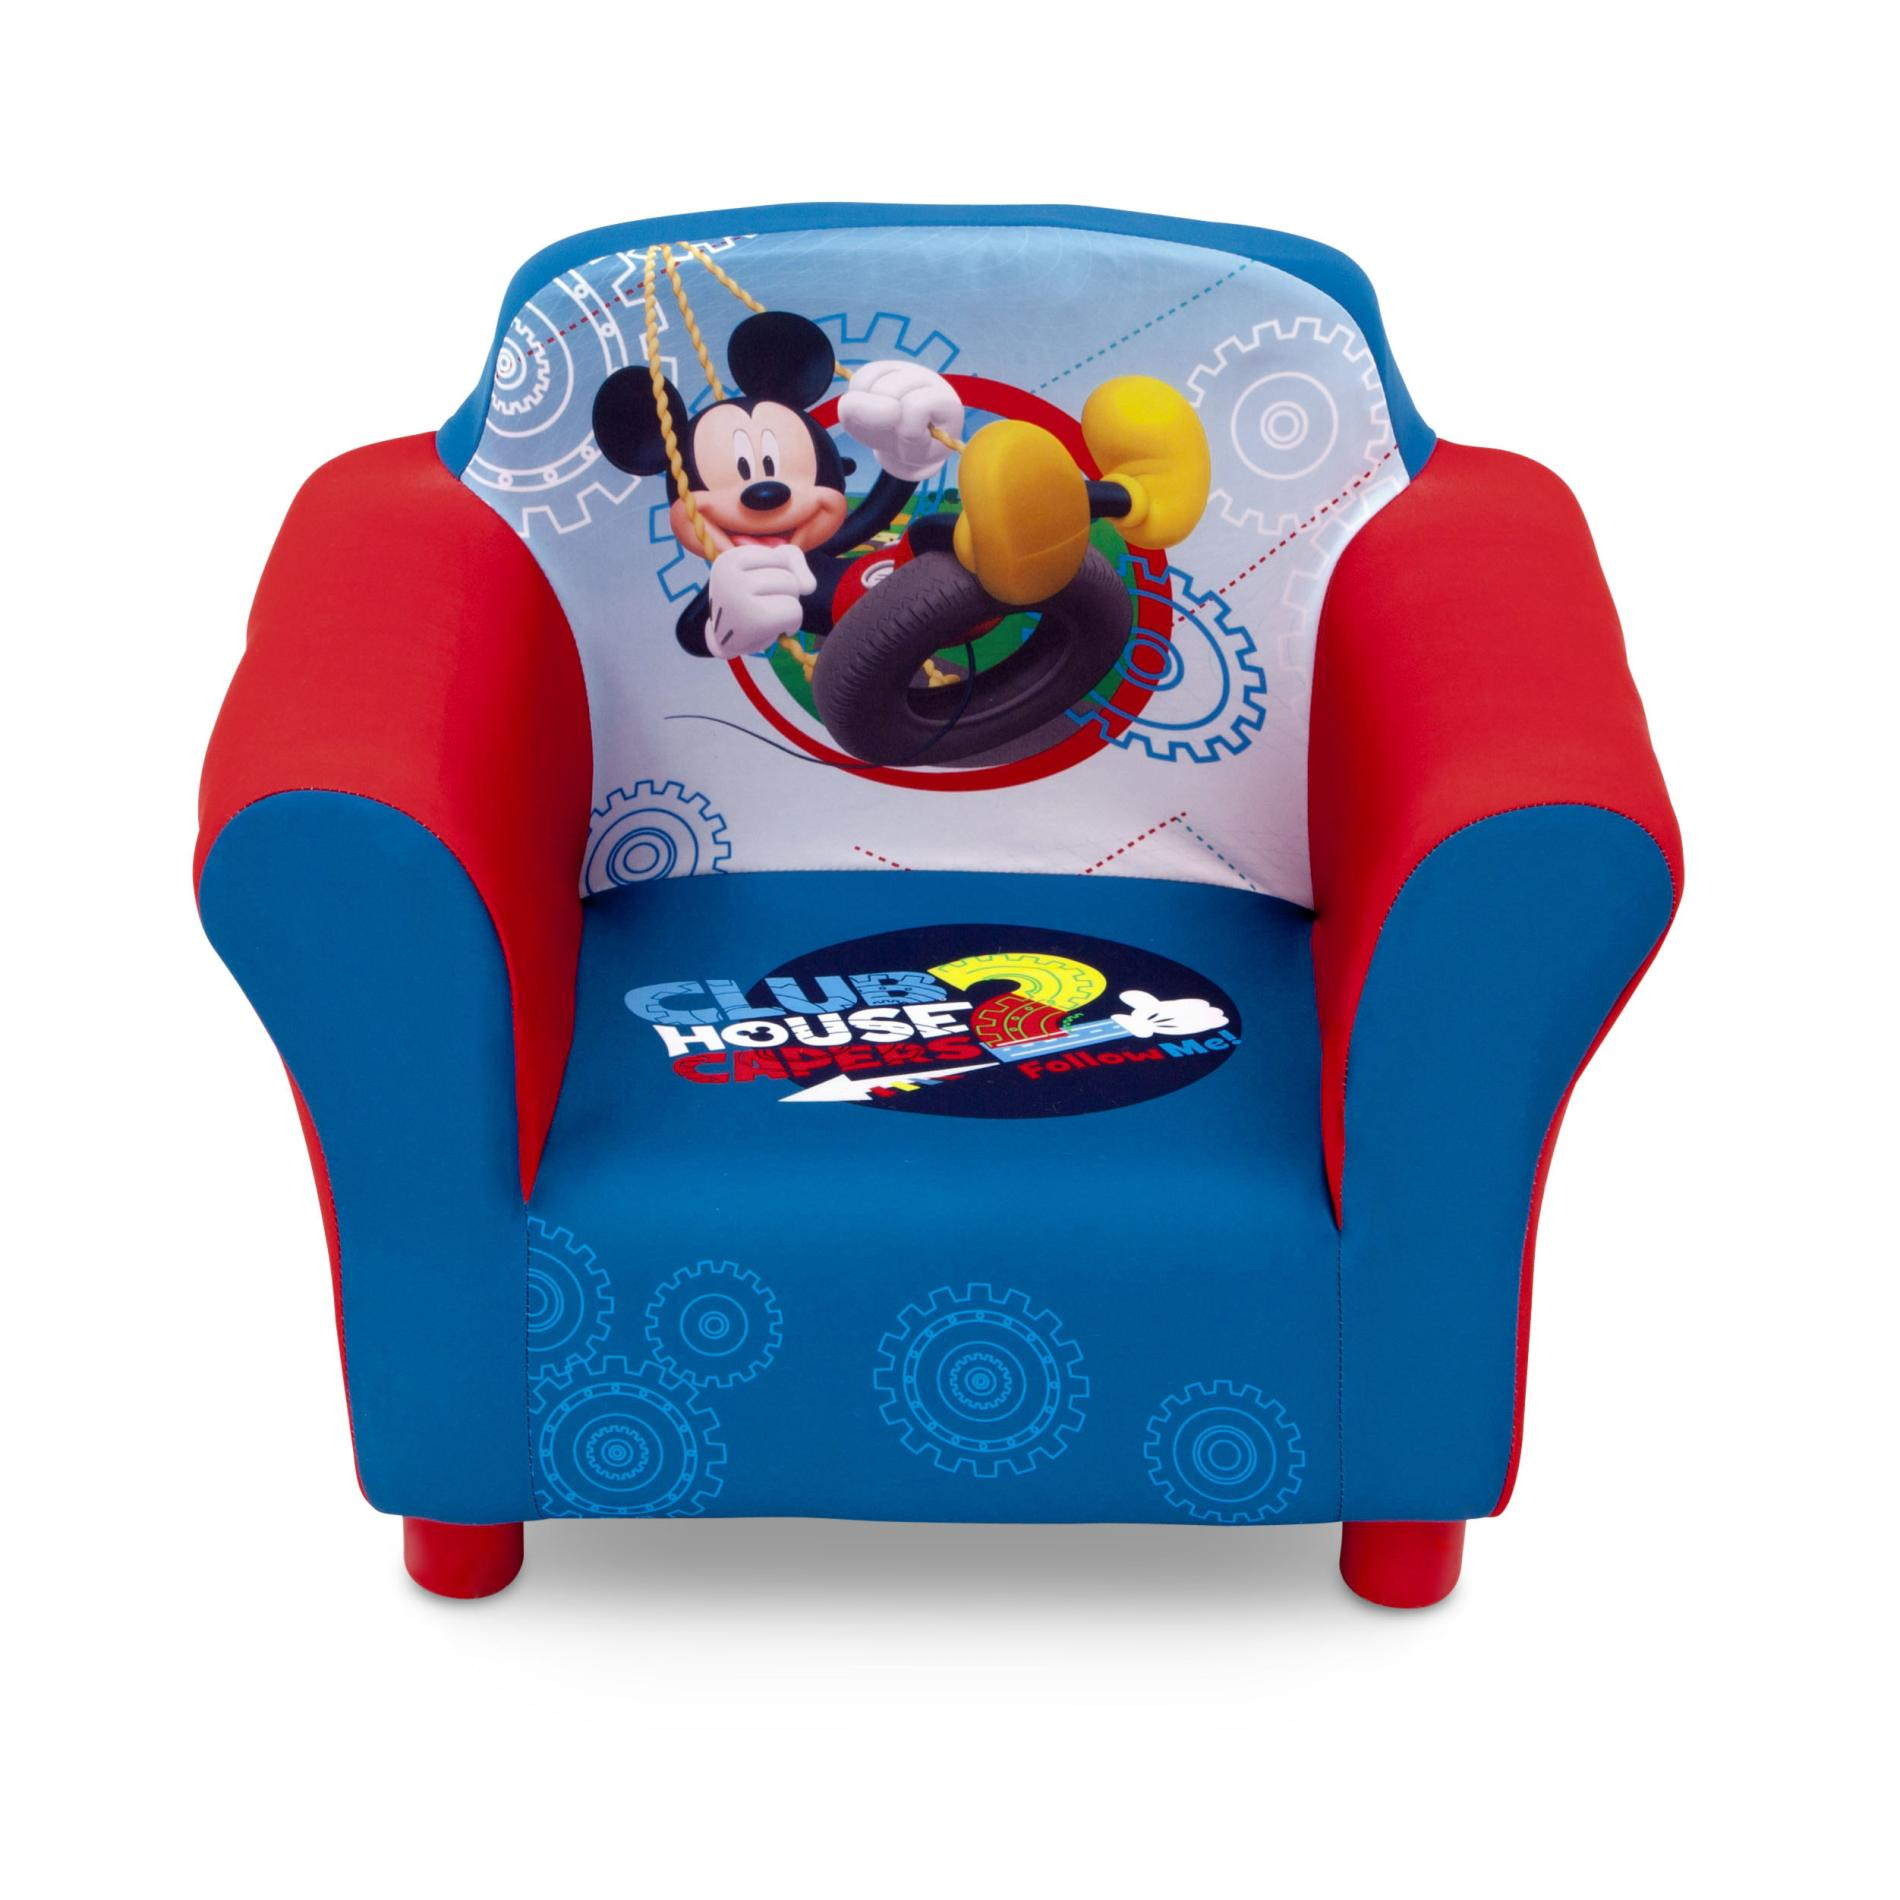 Toddler Boy Chair Disney Mickey Mouse Clubhouse Toddler Boy 39s Upholstered